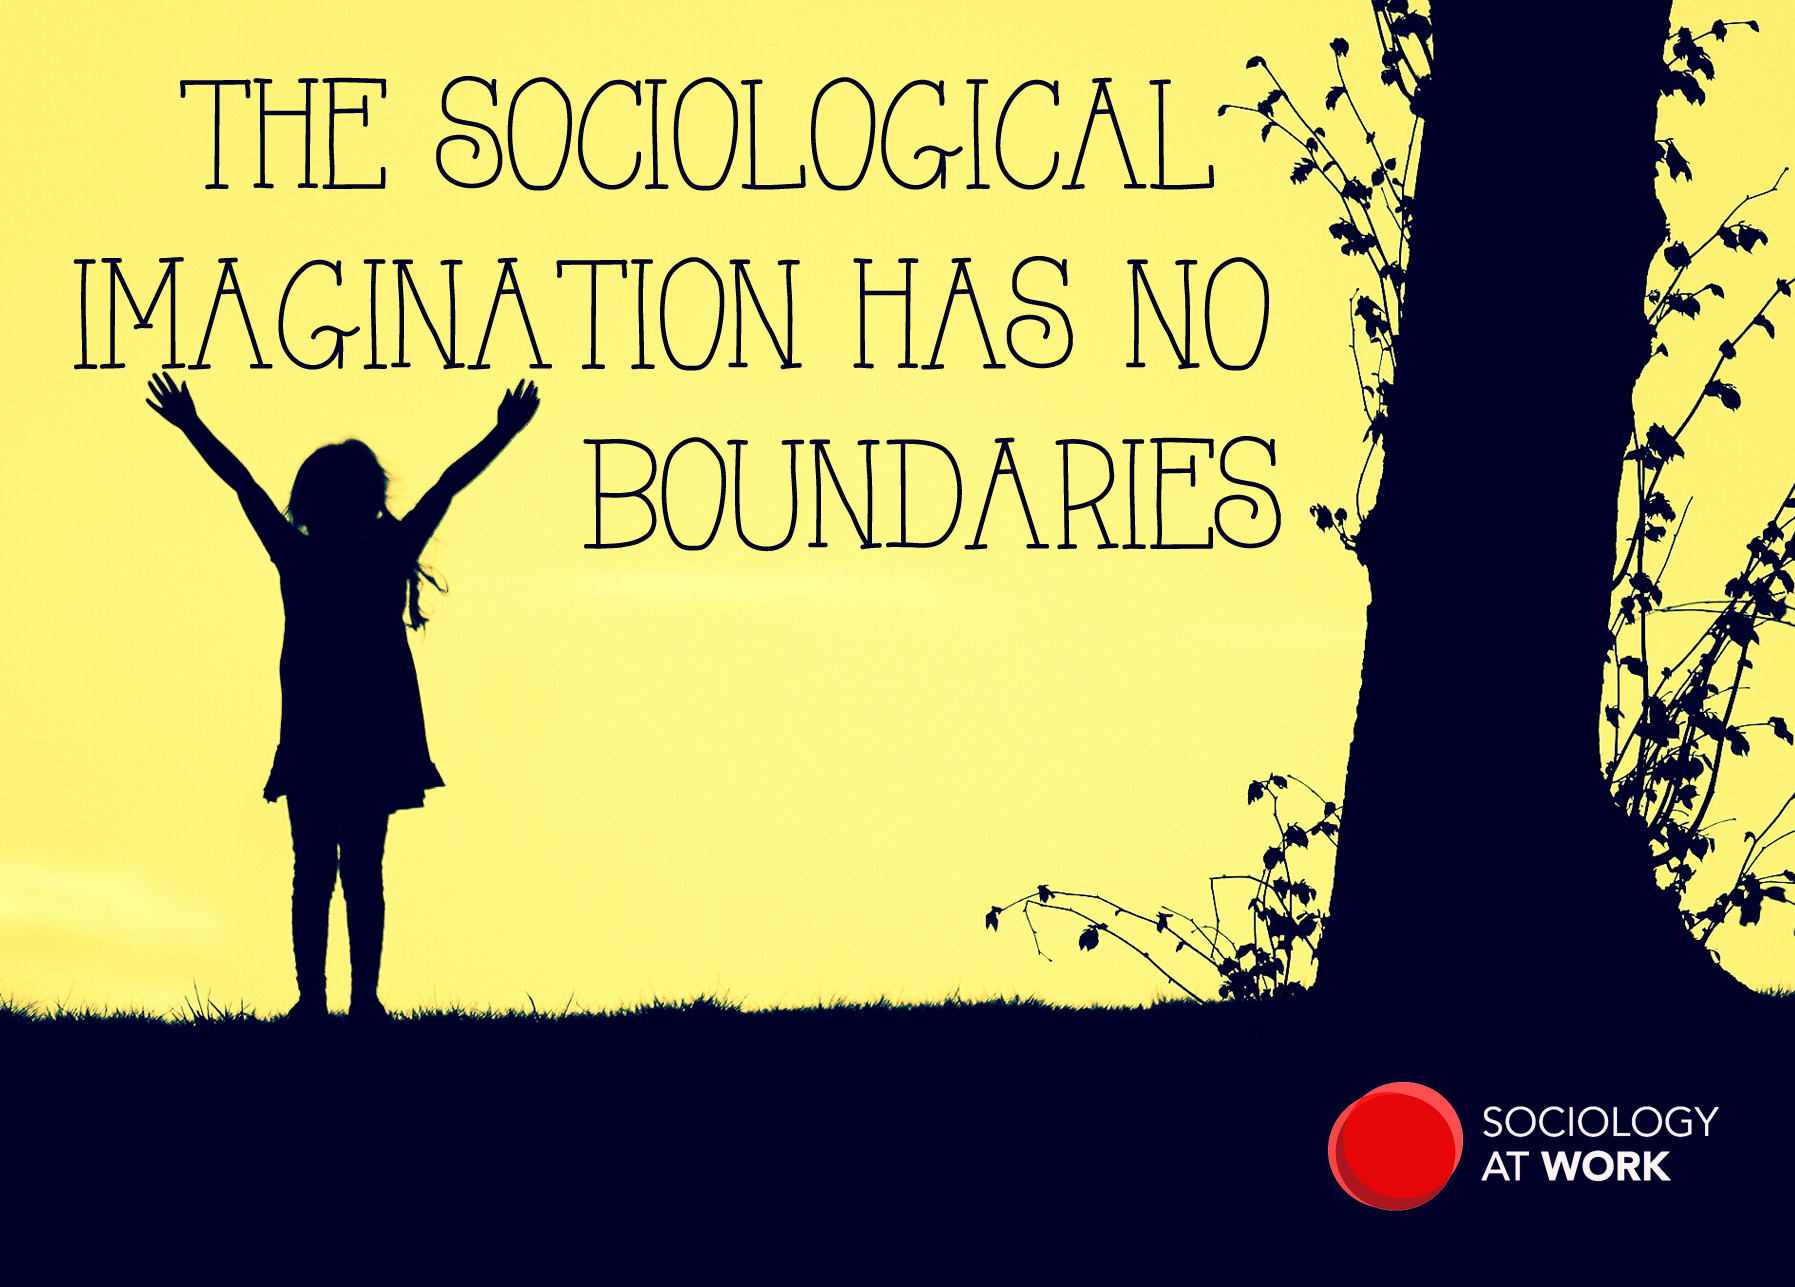 sociological imagination quotes The sociological imagination study guide contains a biography of c wright mills, literature essays, quiz questions, major themes, characters, and a full summary and analysis.